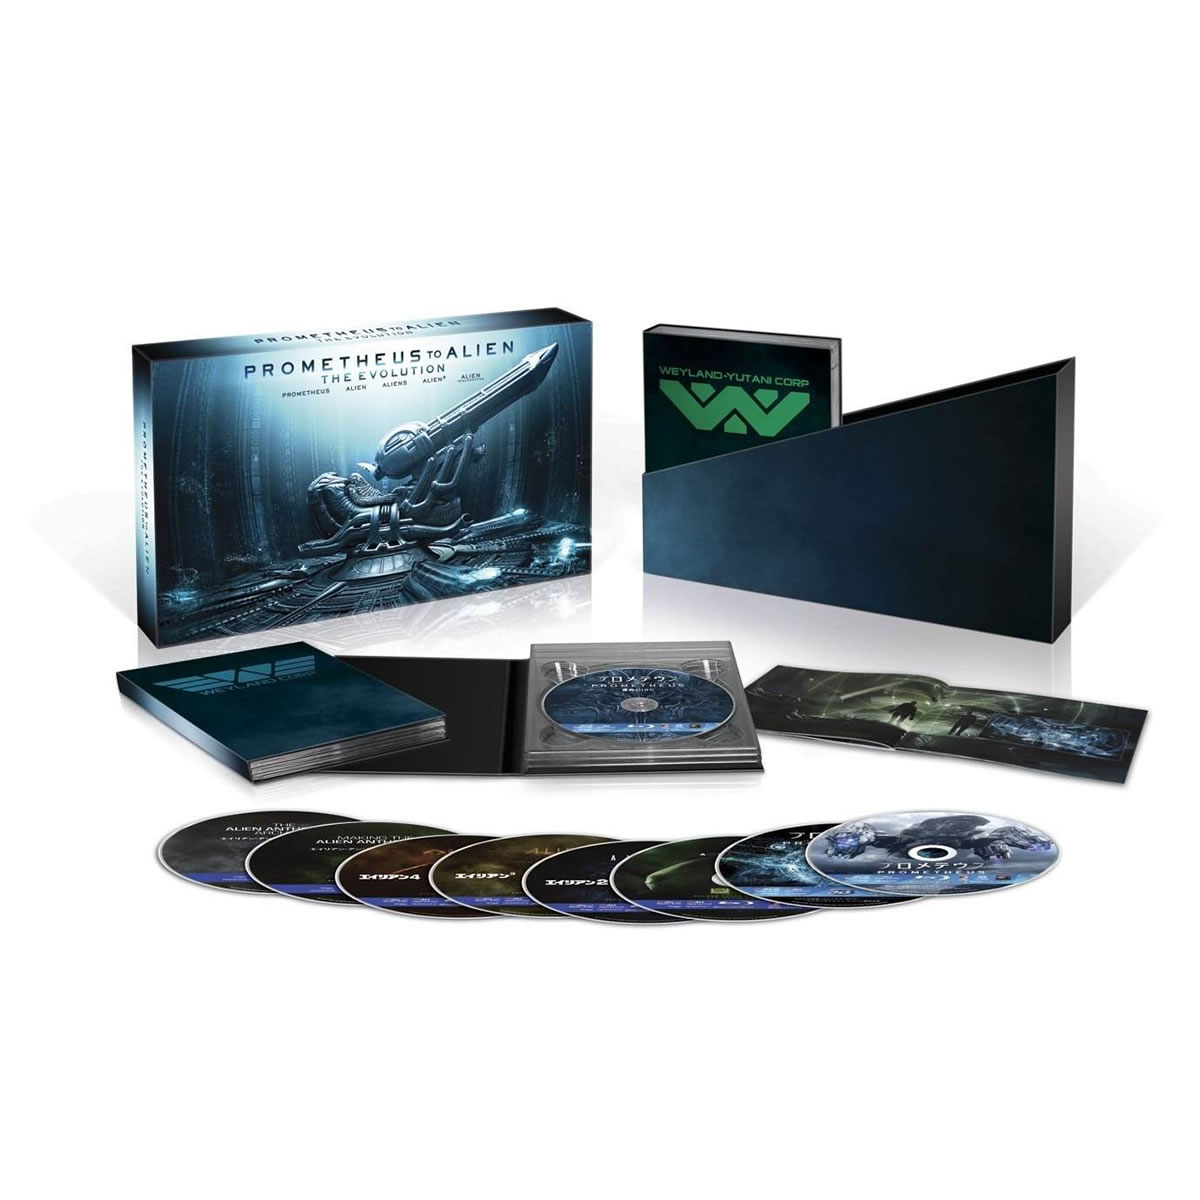 PROMETHEUS TO ALIEN - THE EVOLUTION - Limited Edition ������������ [��������� �� ���������� ����������] (BLU-RAY 3D + 8 BLU-RAY)